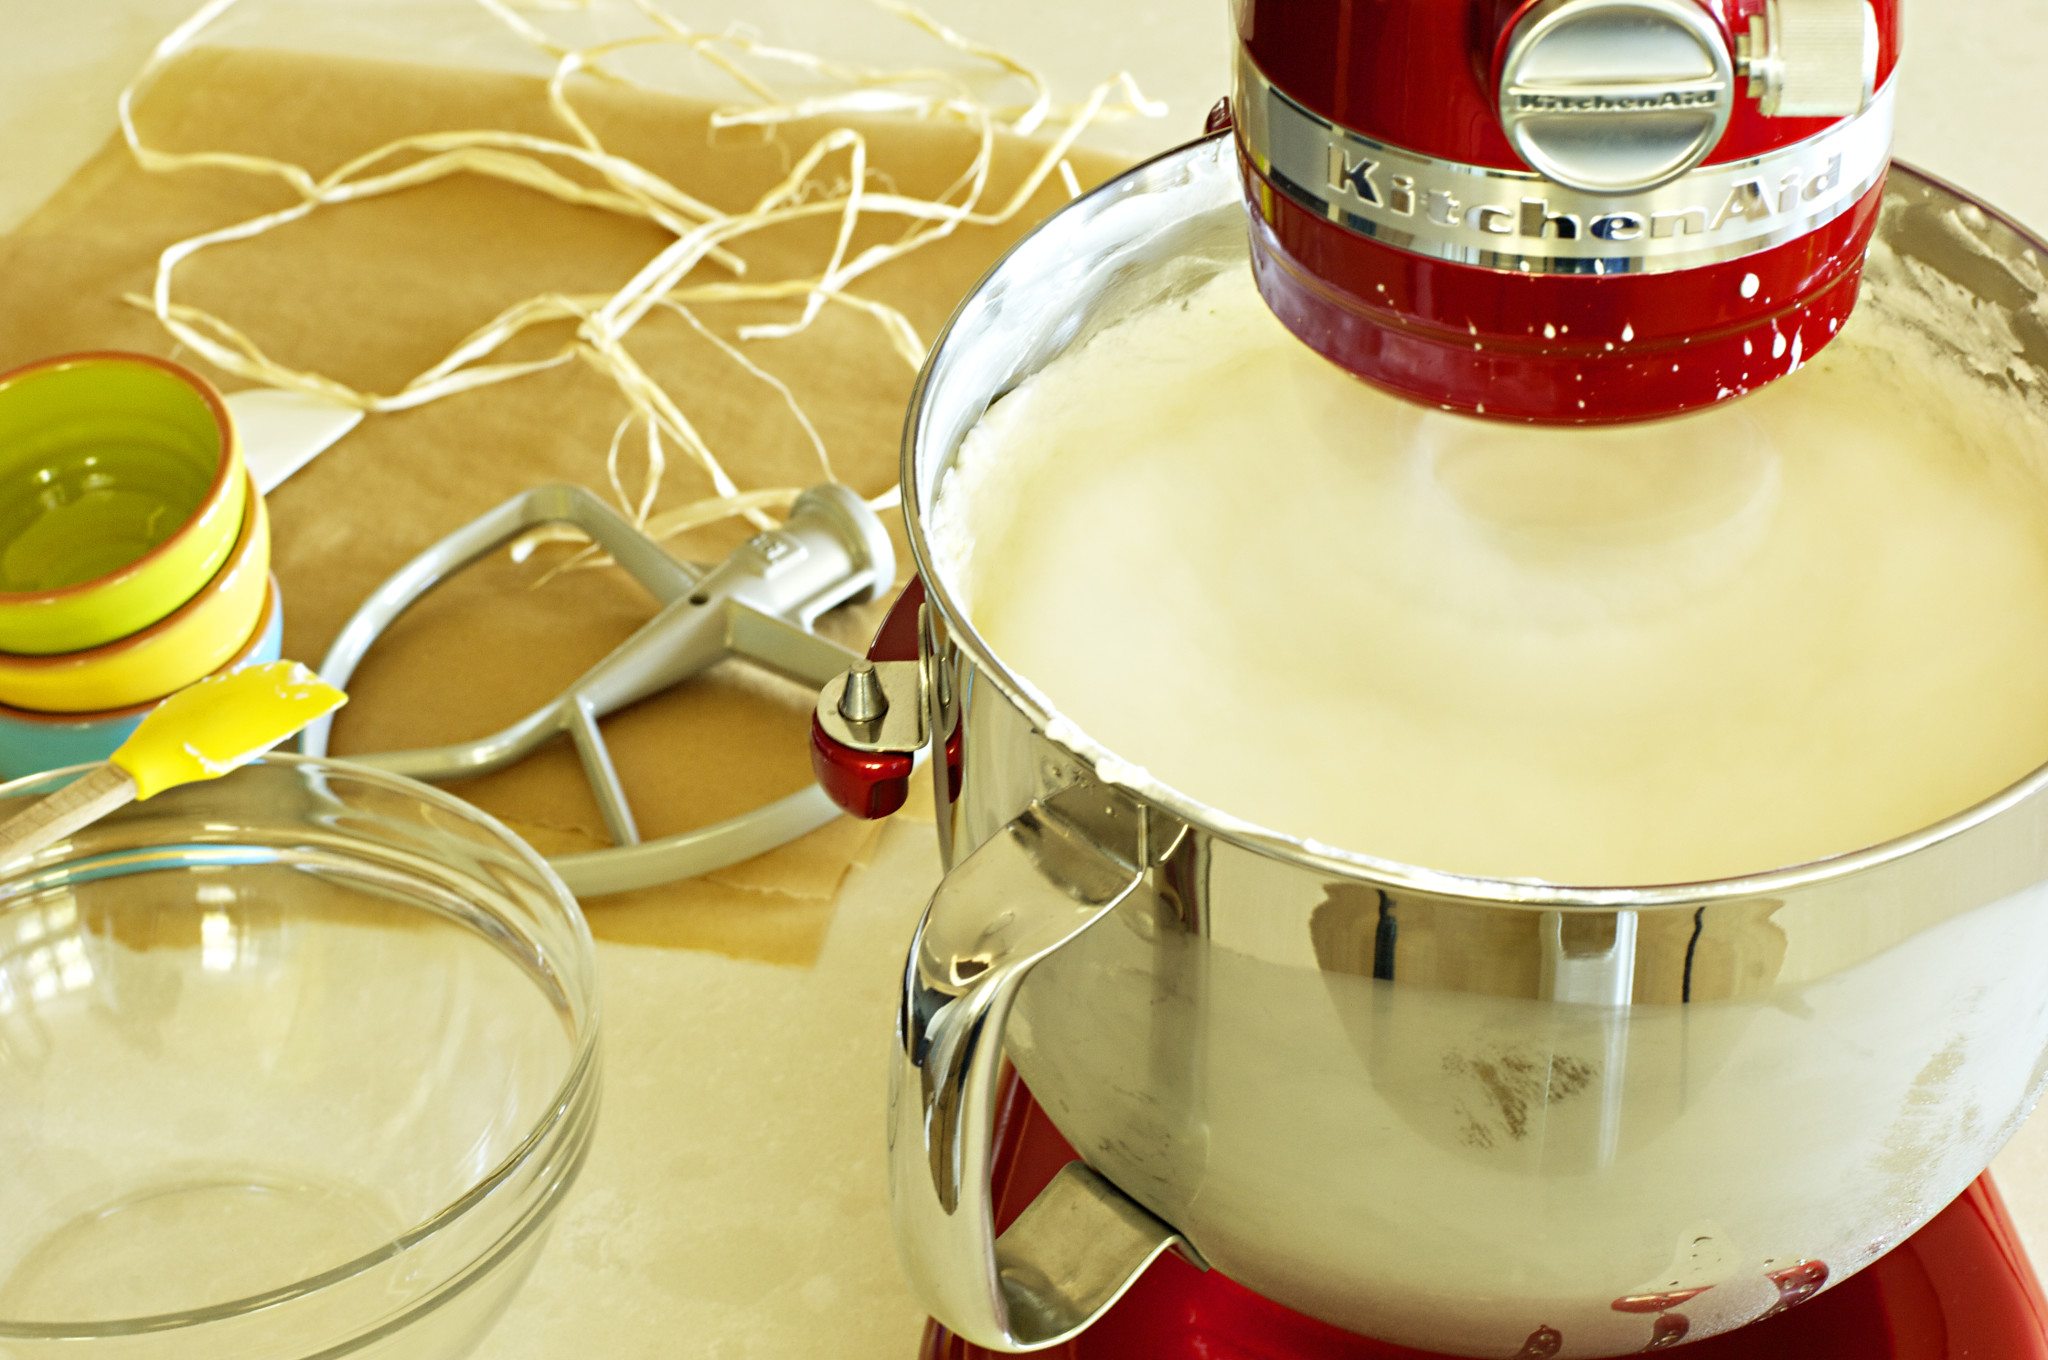 Phase two in making butter: whipping beyond cream